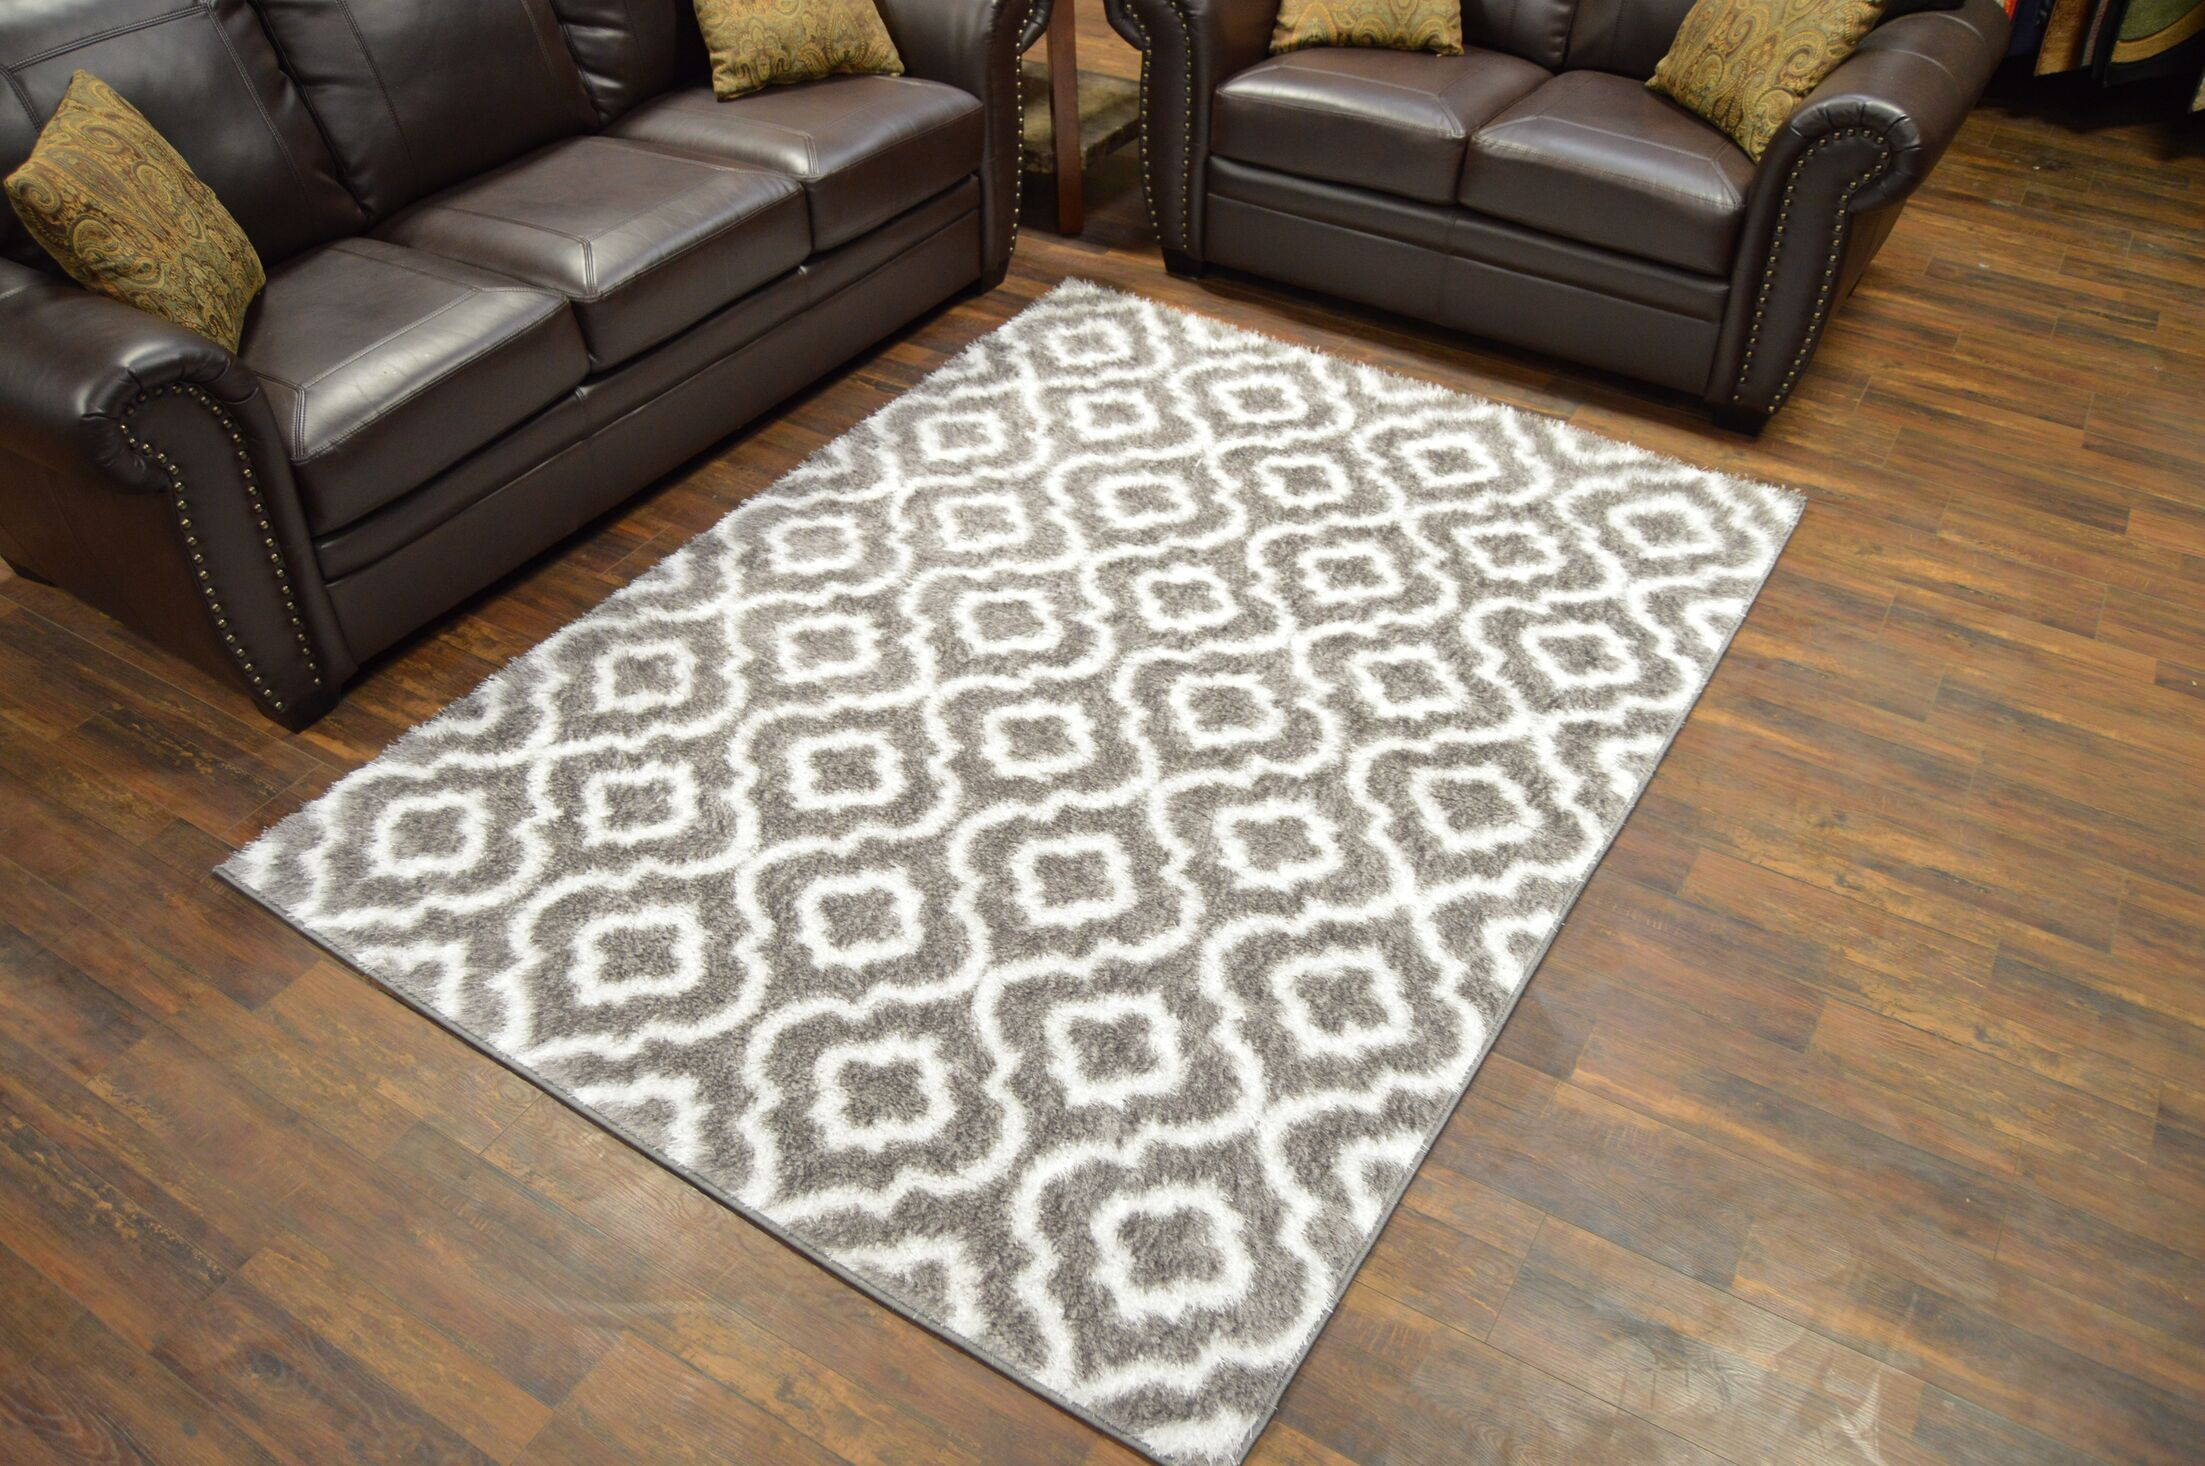 Rauch Shaggy Gray Area Rug